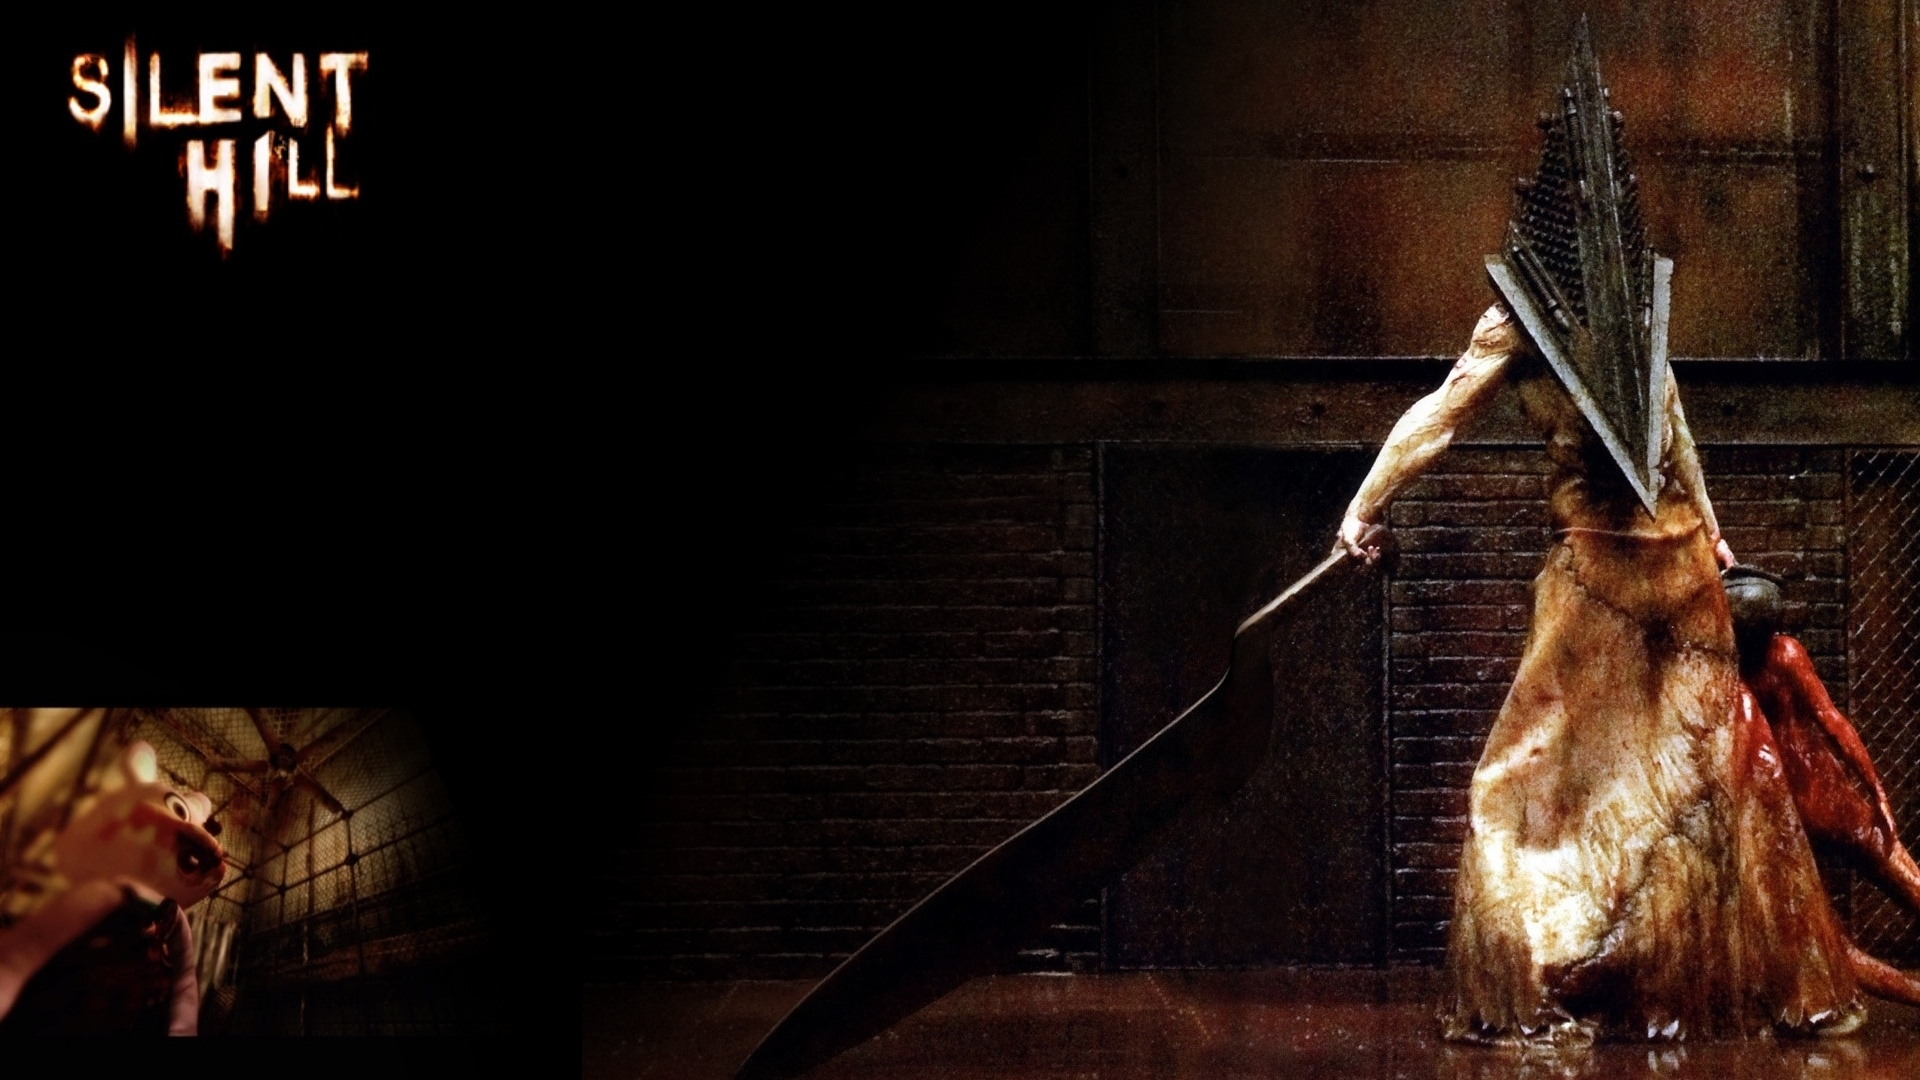 1920x1080 - Silent Hill HD Wallpapers 4